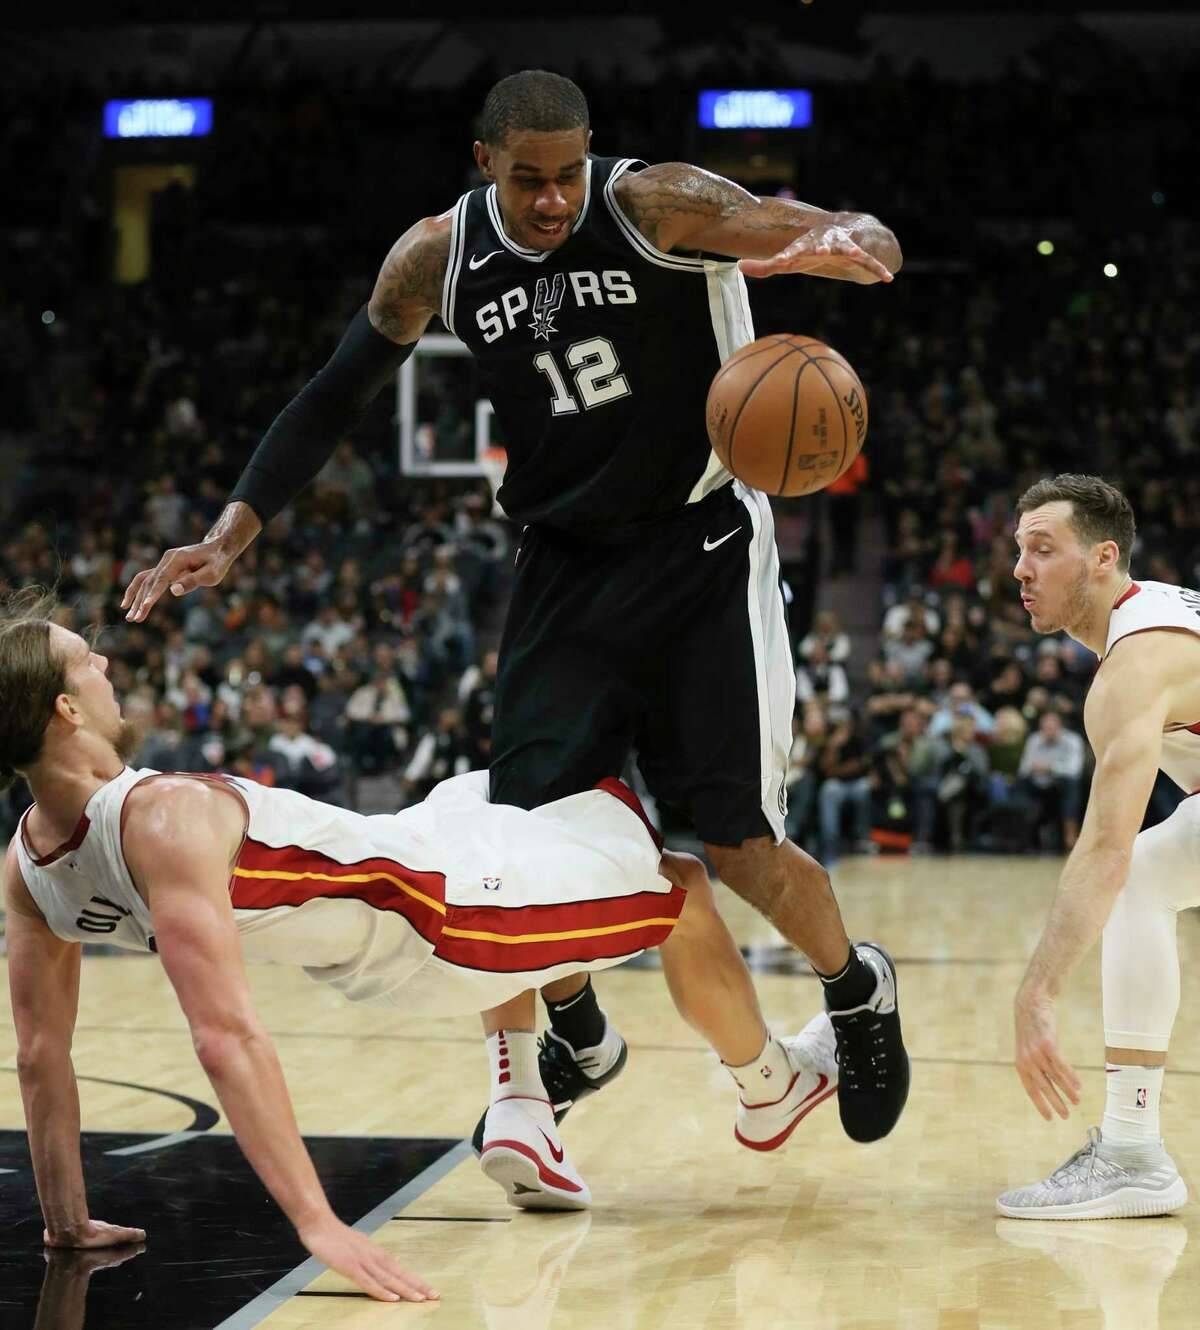 Spurs' LaMarcus Aldridge (12) collides with Miami Heat's Kelly Olynyk (09) at the AT&T Center on Wednesday, Dec. 6, 2017.